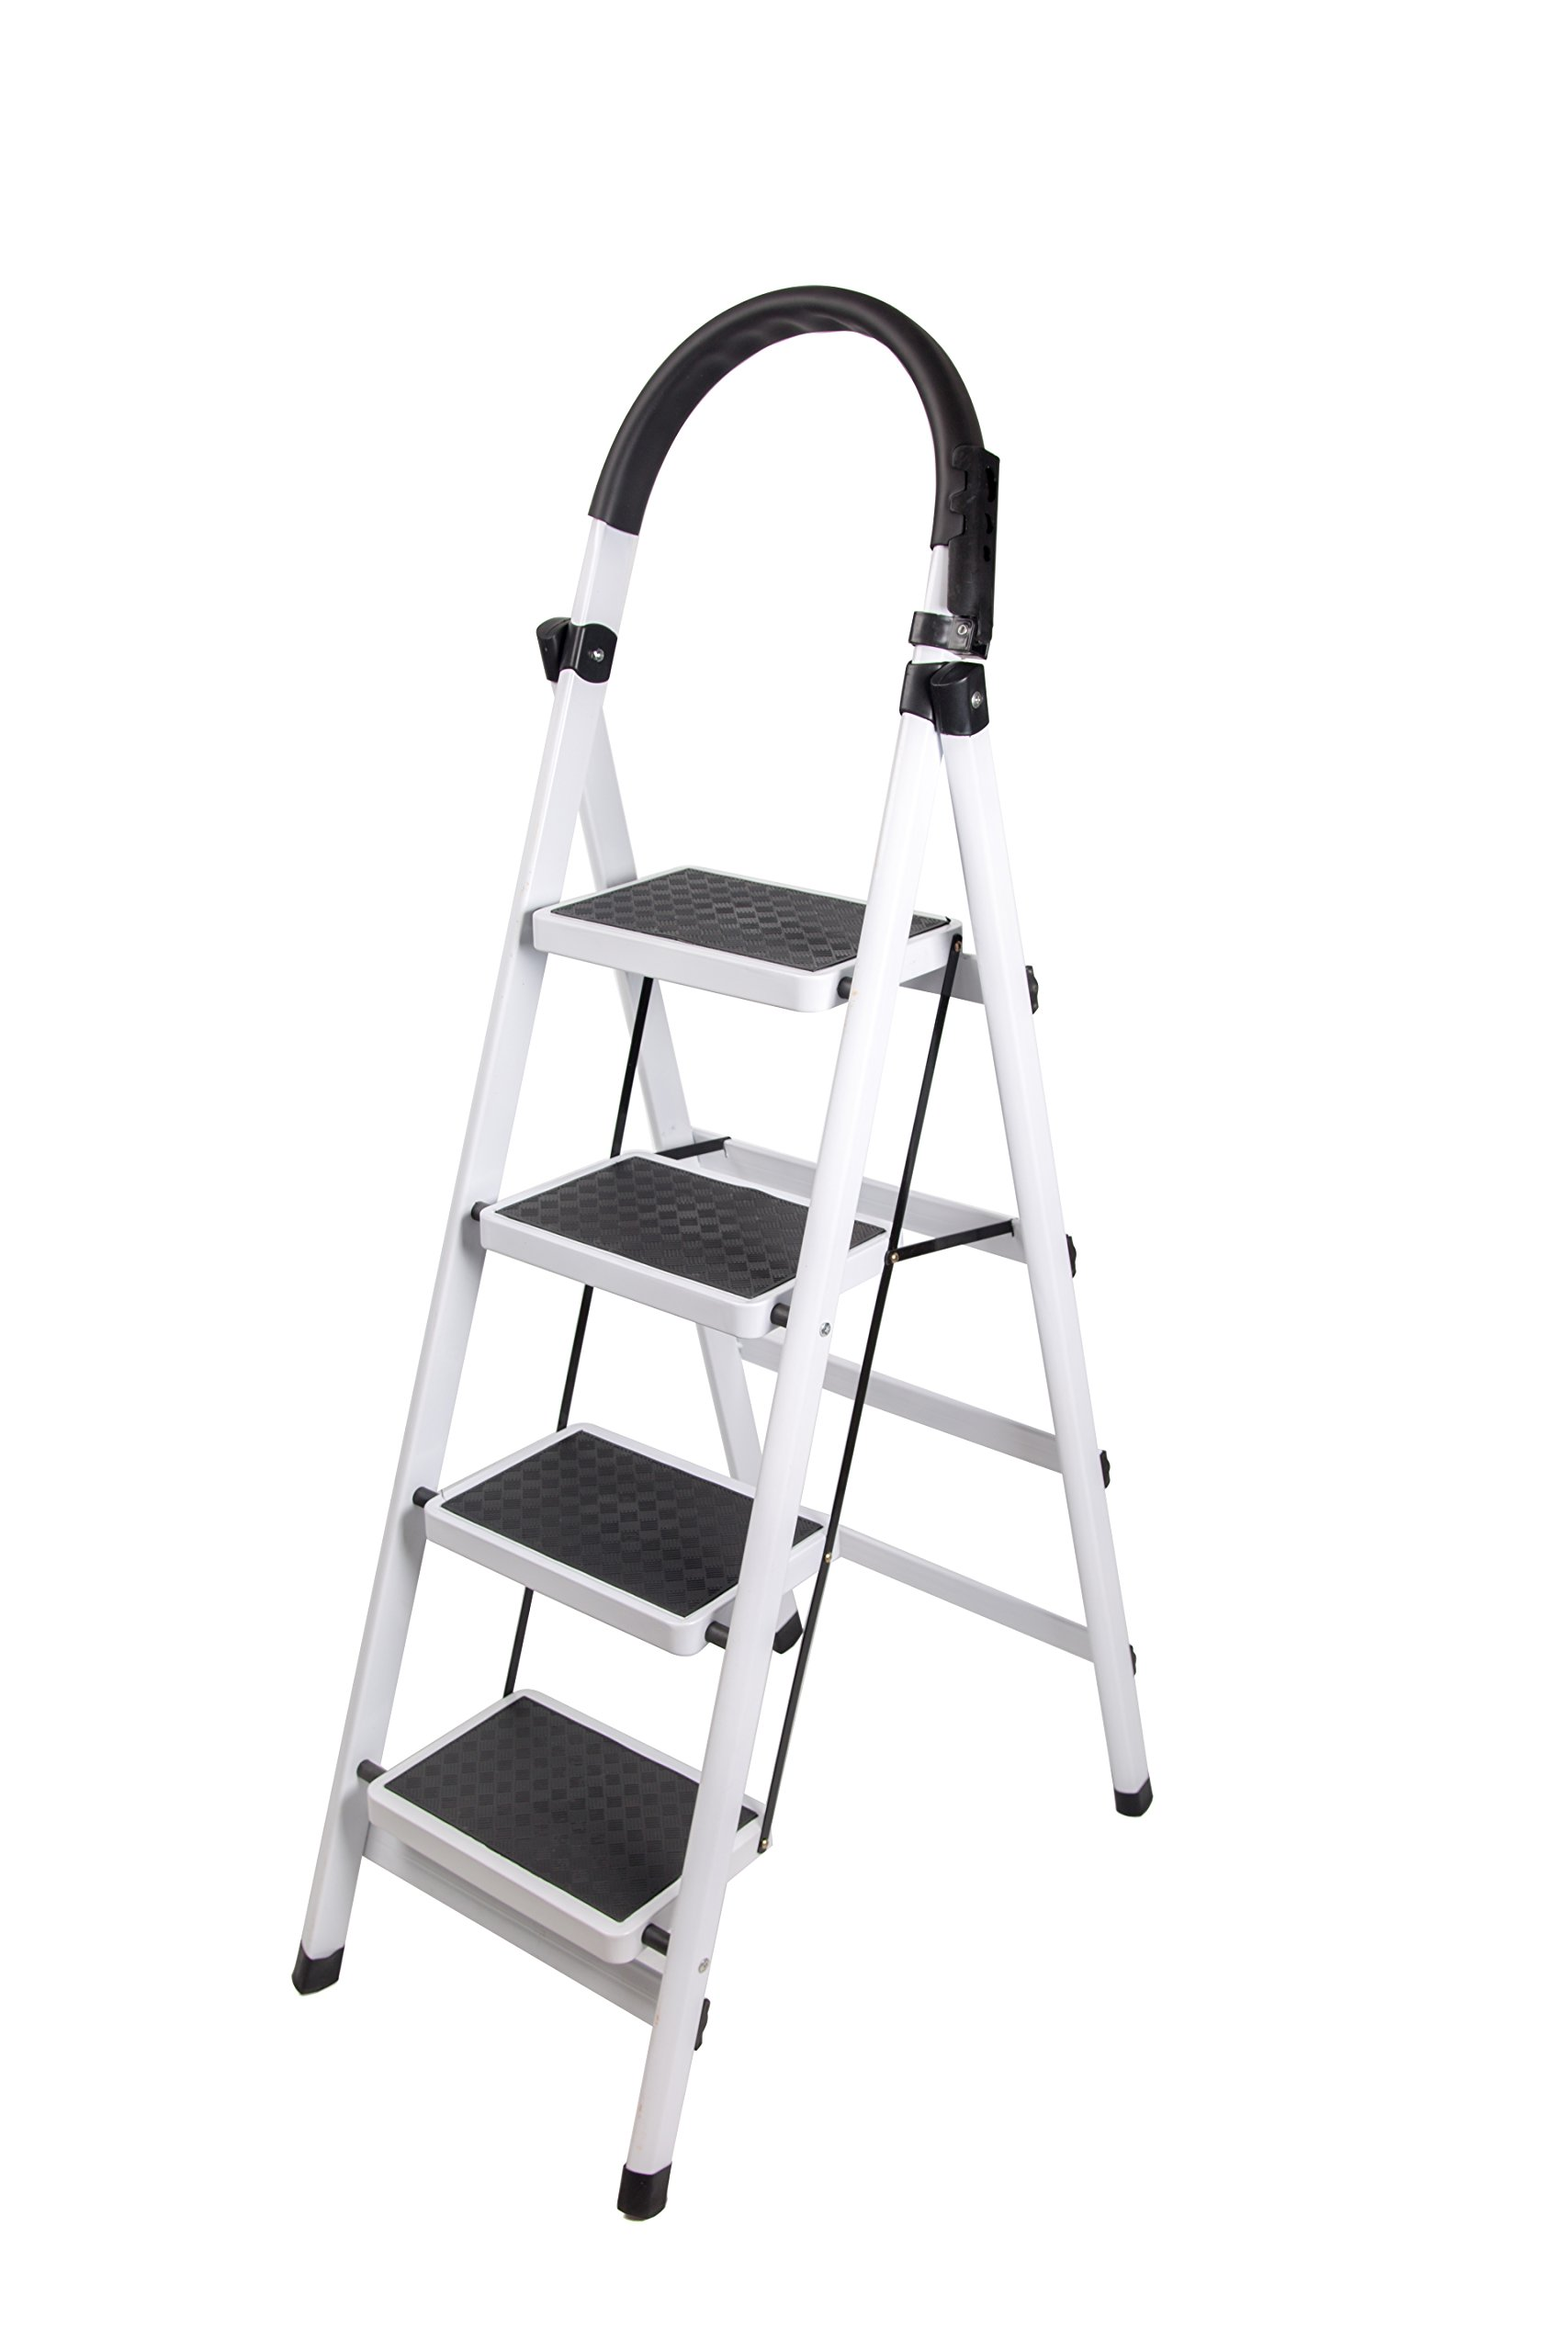 Gimify Household Folding 4-Step Ladder Steel Frame Stool 330lbs Capacity Platform Ladder Anti-Slip Sturdy Wide Pedal Portable Steel Step Stool White (4 step)